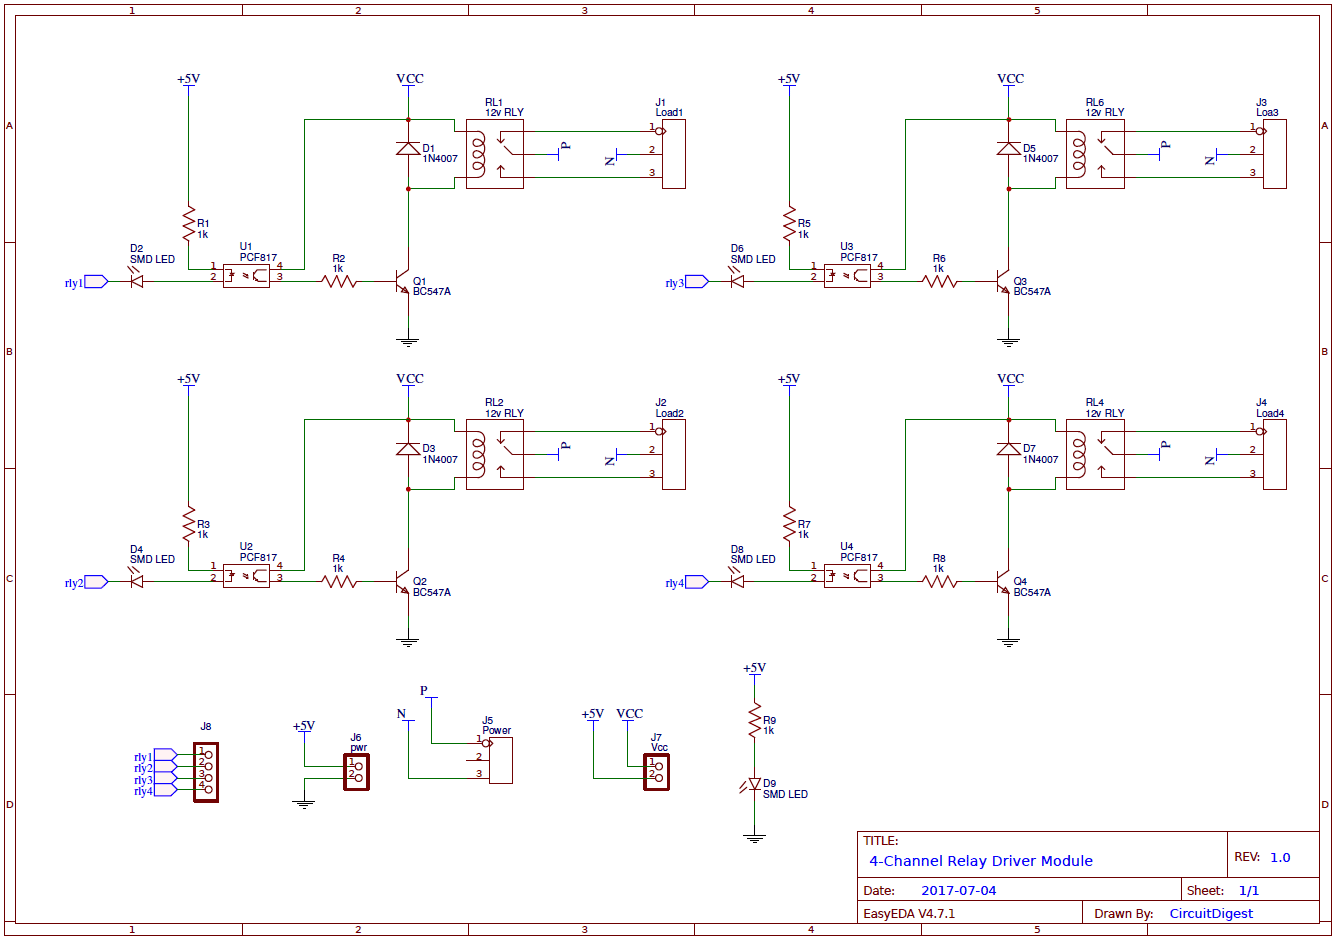 4 channel relay driver circuit diagram on pcb 4 channel relay driver module circuit diagram ccuart